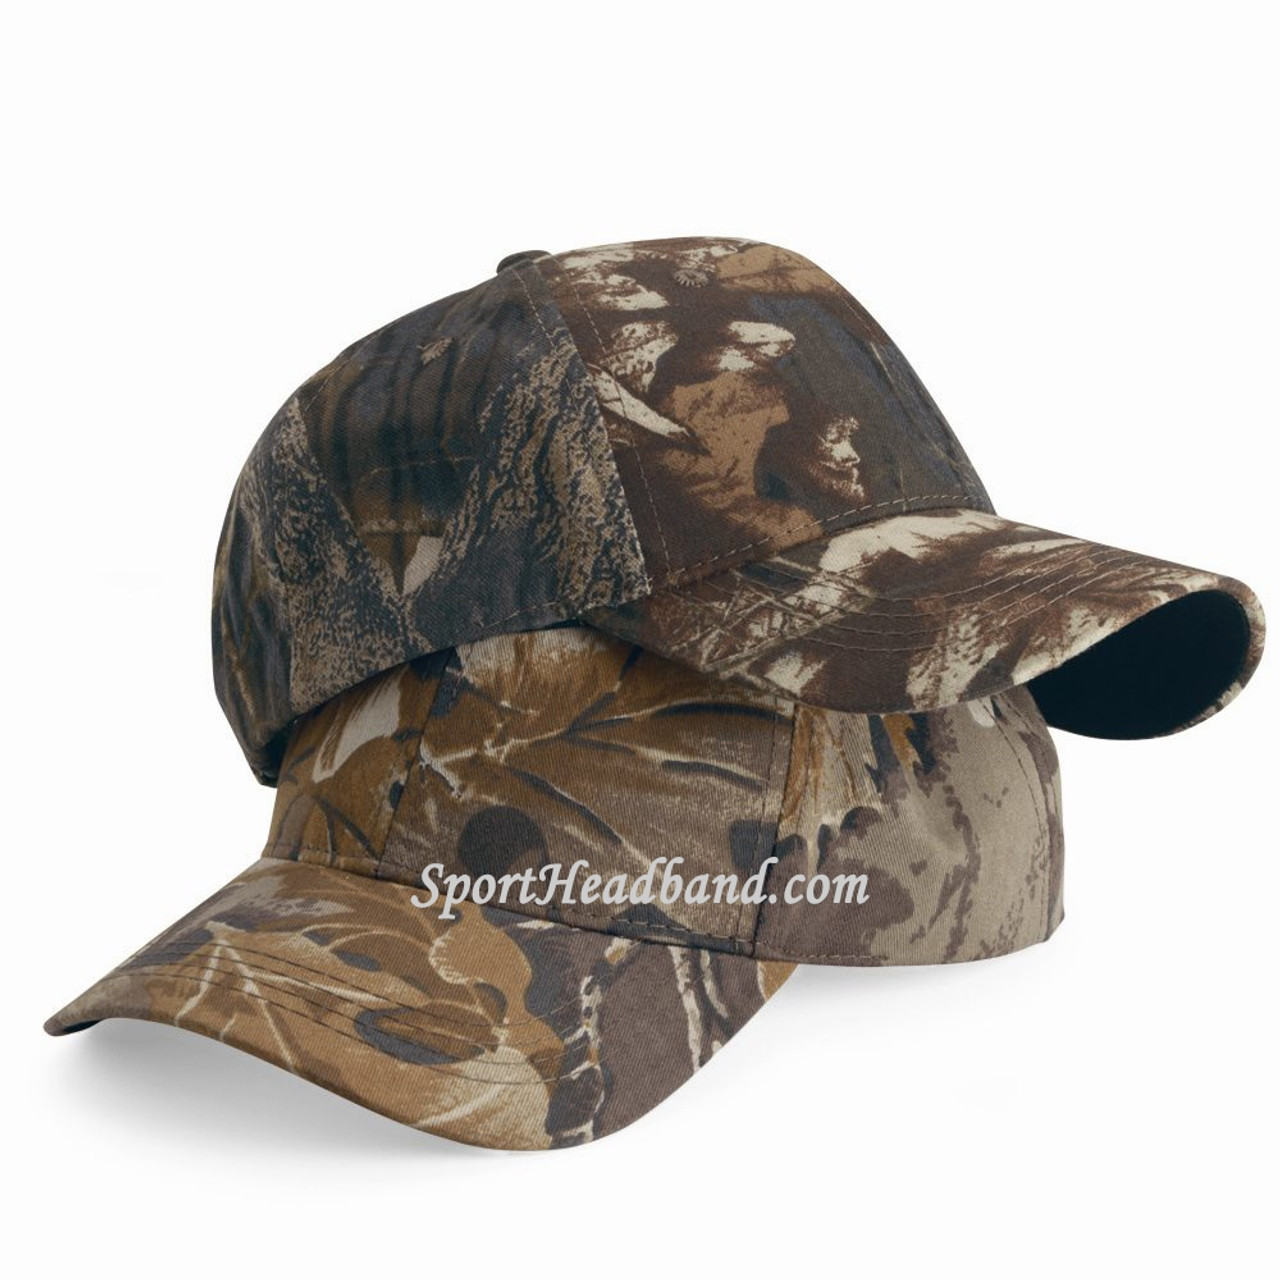 72e4f45a702 Finish off the perfect hunting outfit with one of these intricately  designed hunting caps. We have bucket caps and snapbacks.